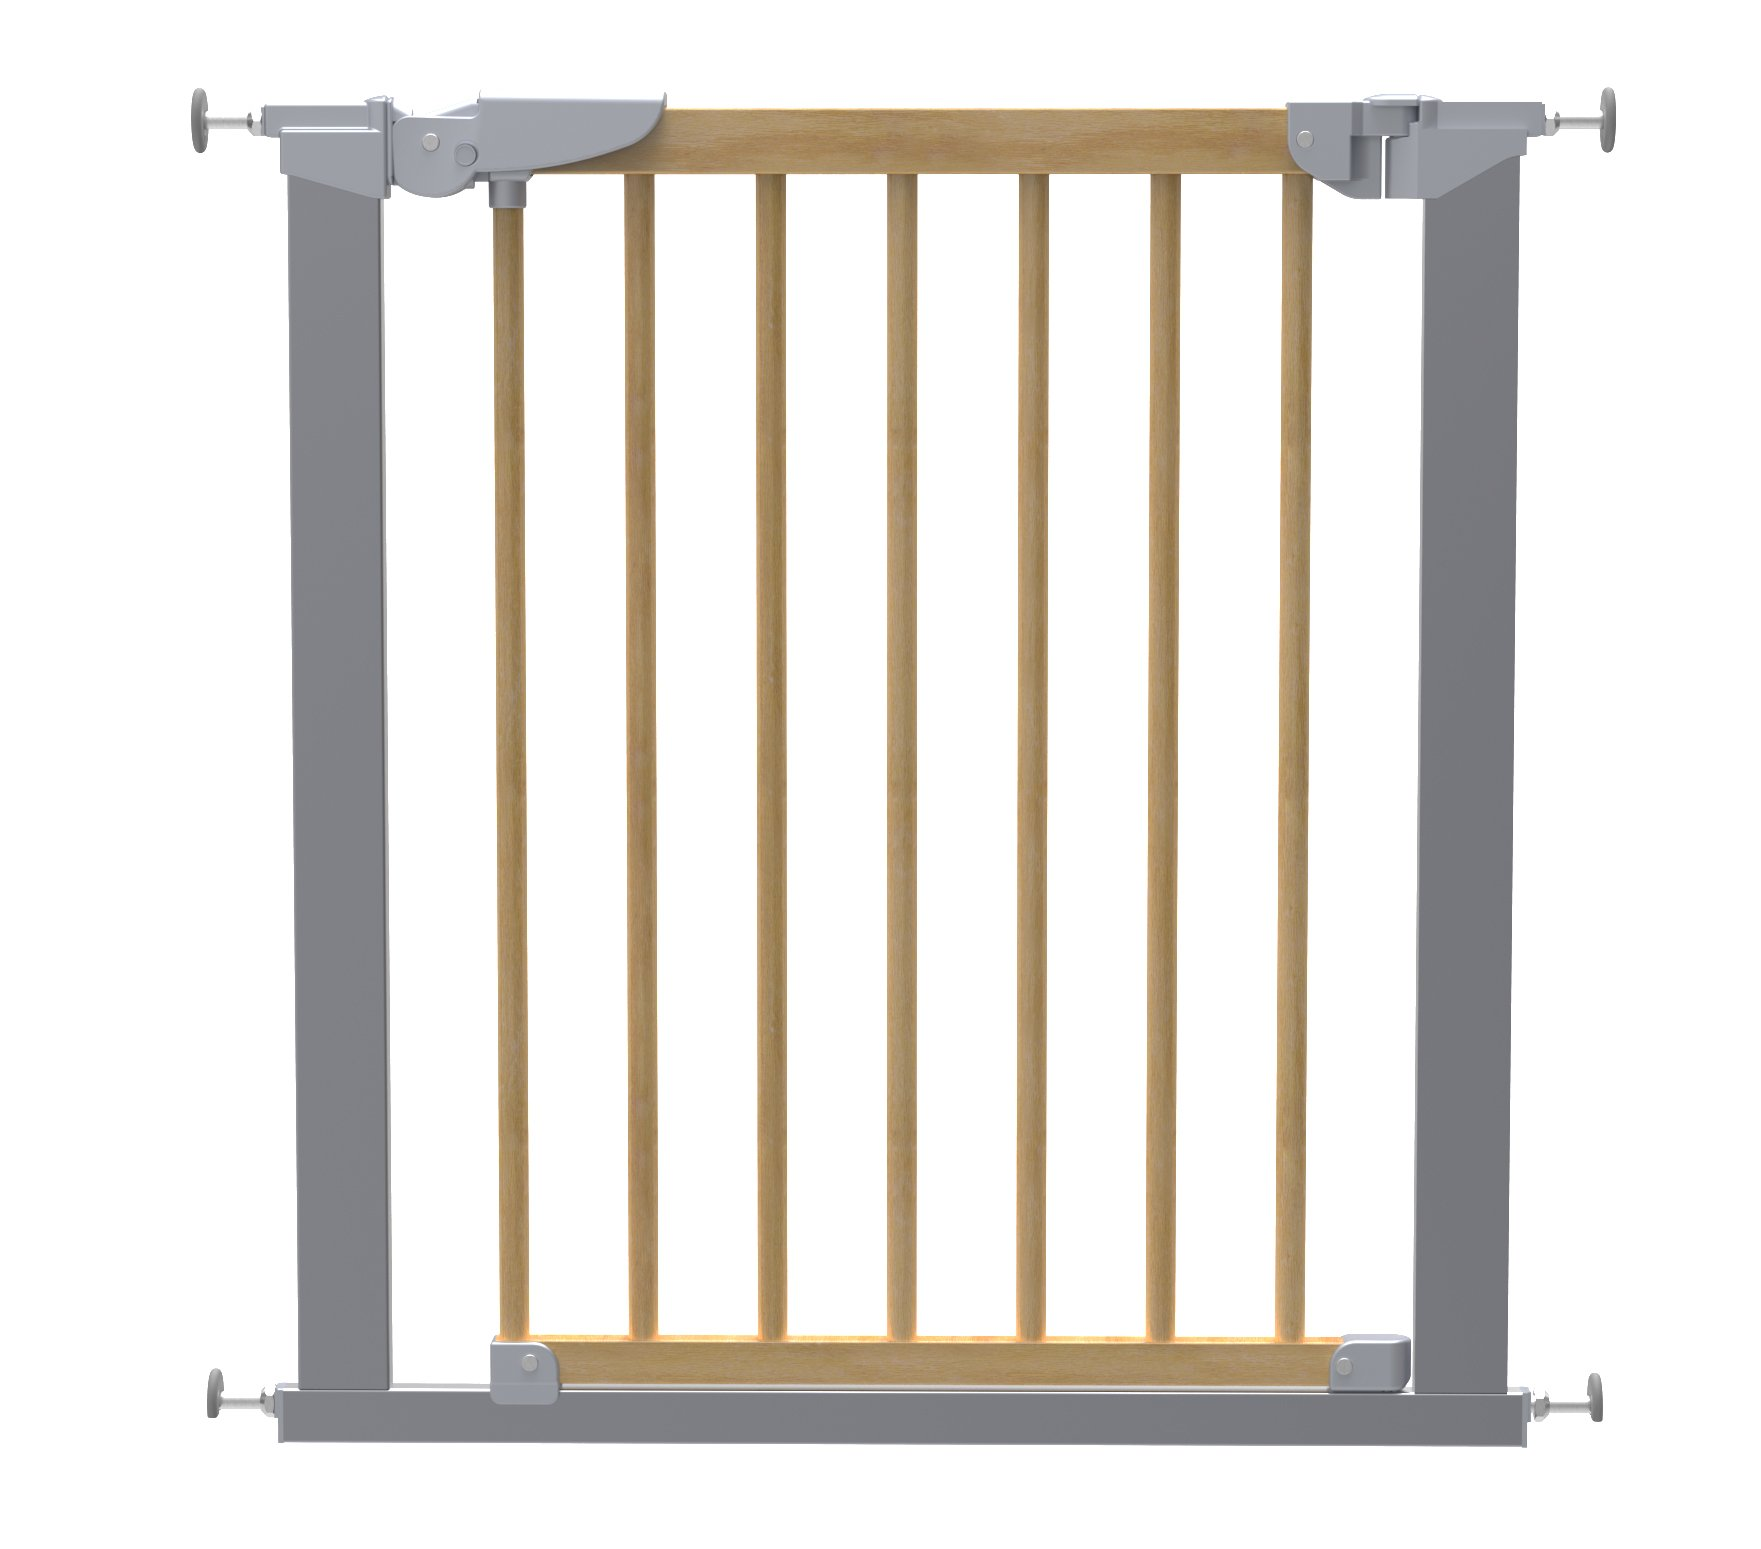 BabyDan Avantgarde True Pressure Fit Safety Gate (Beech/Silver)  Fits openings from 71.3 to 77.6 cm wide; 73 cm in height Can be extended up to 117.1 cm with additional extensions (sold separately) Pressure technology means the gate can be fitted without wall cups 1